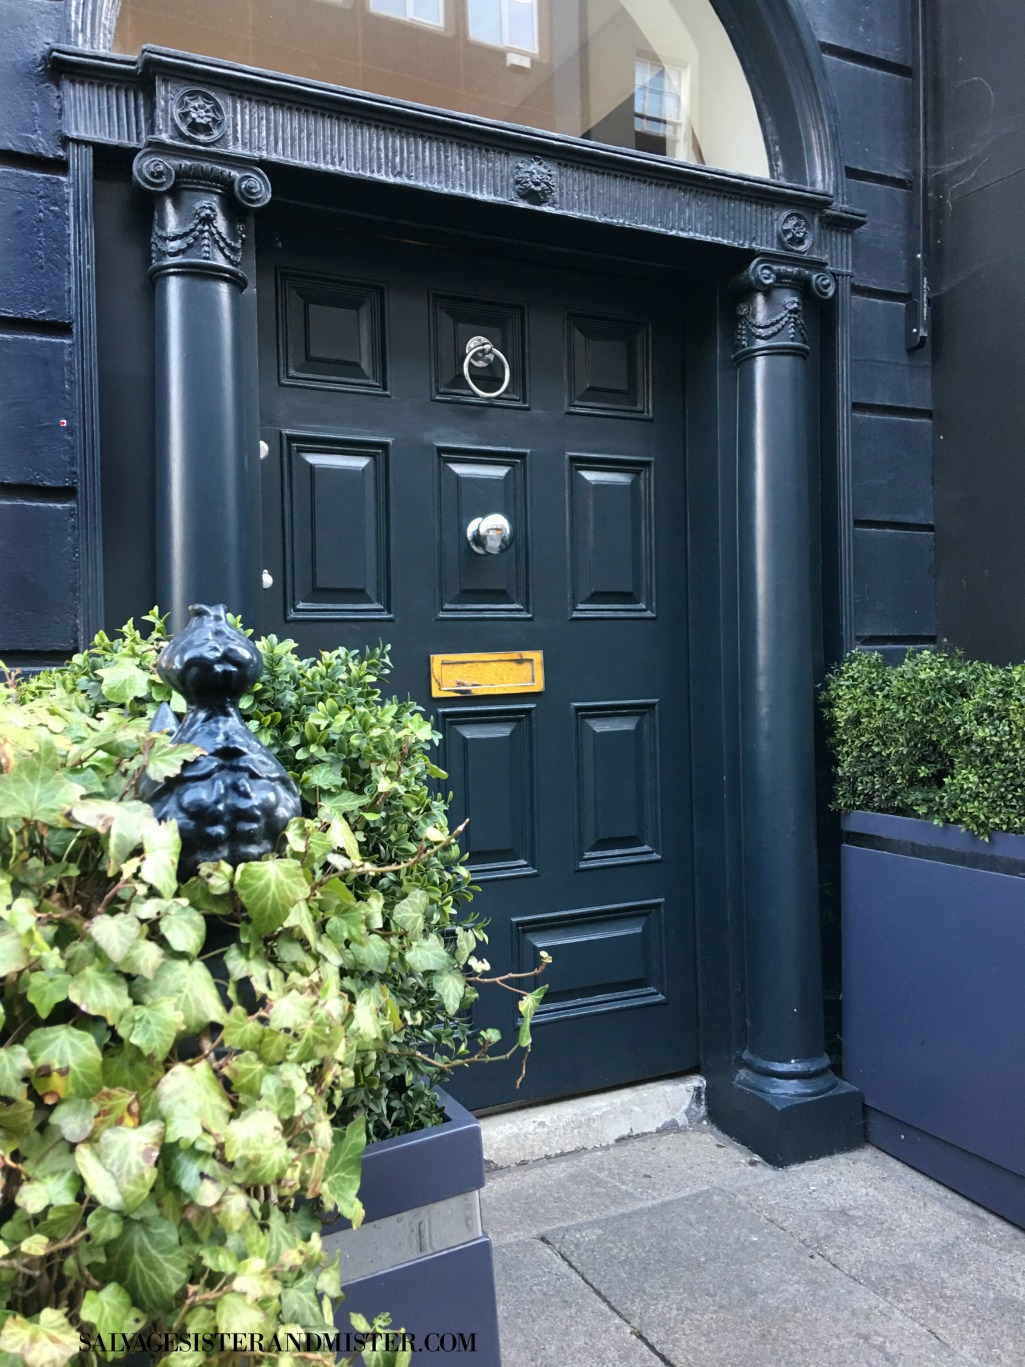 travel ireland - sharing the beautiful doors of dublin and all across the country on salvagesisterandmister.com